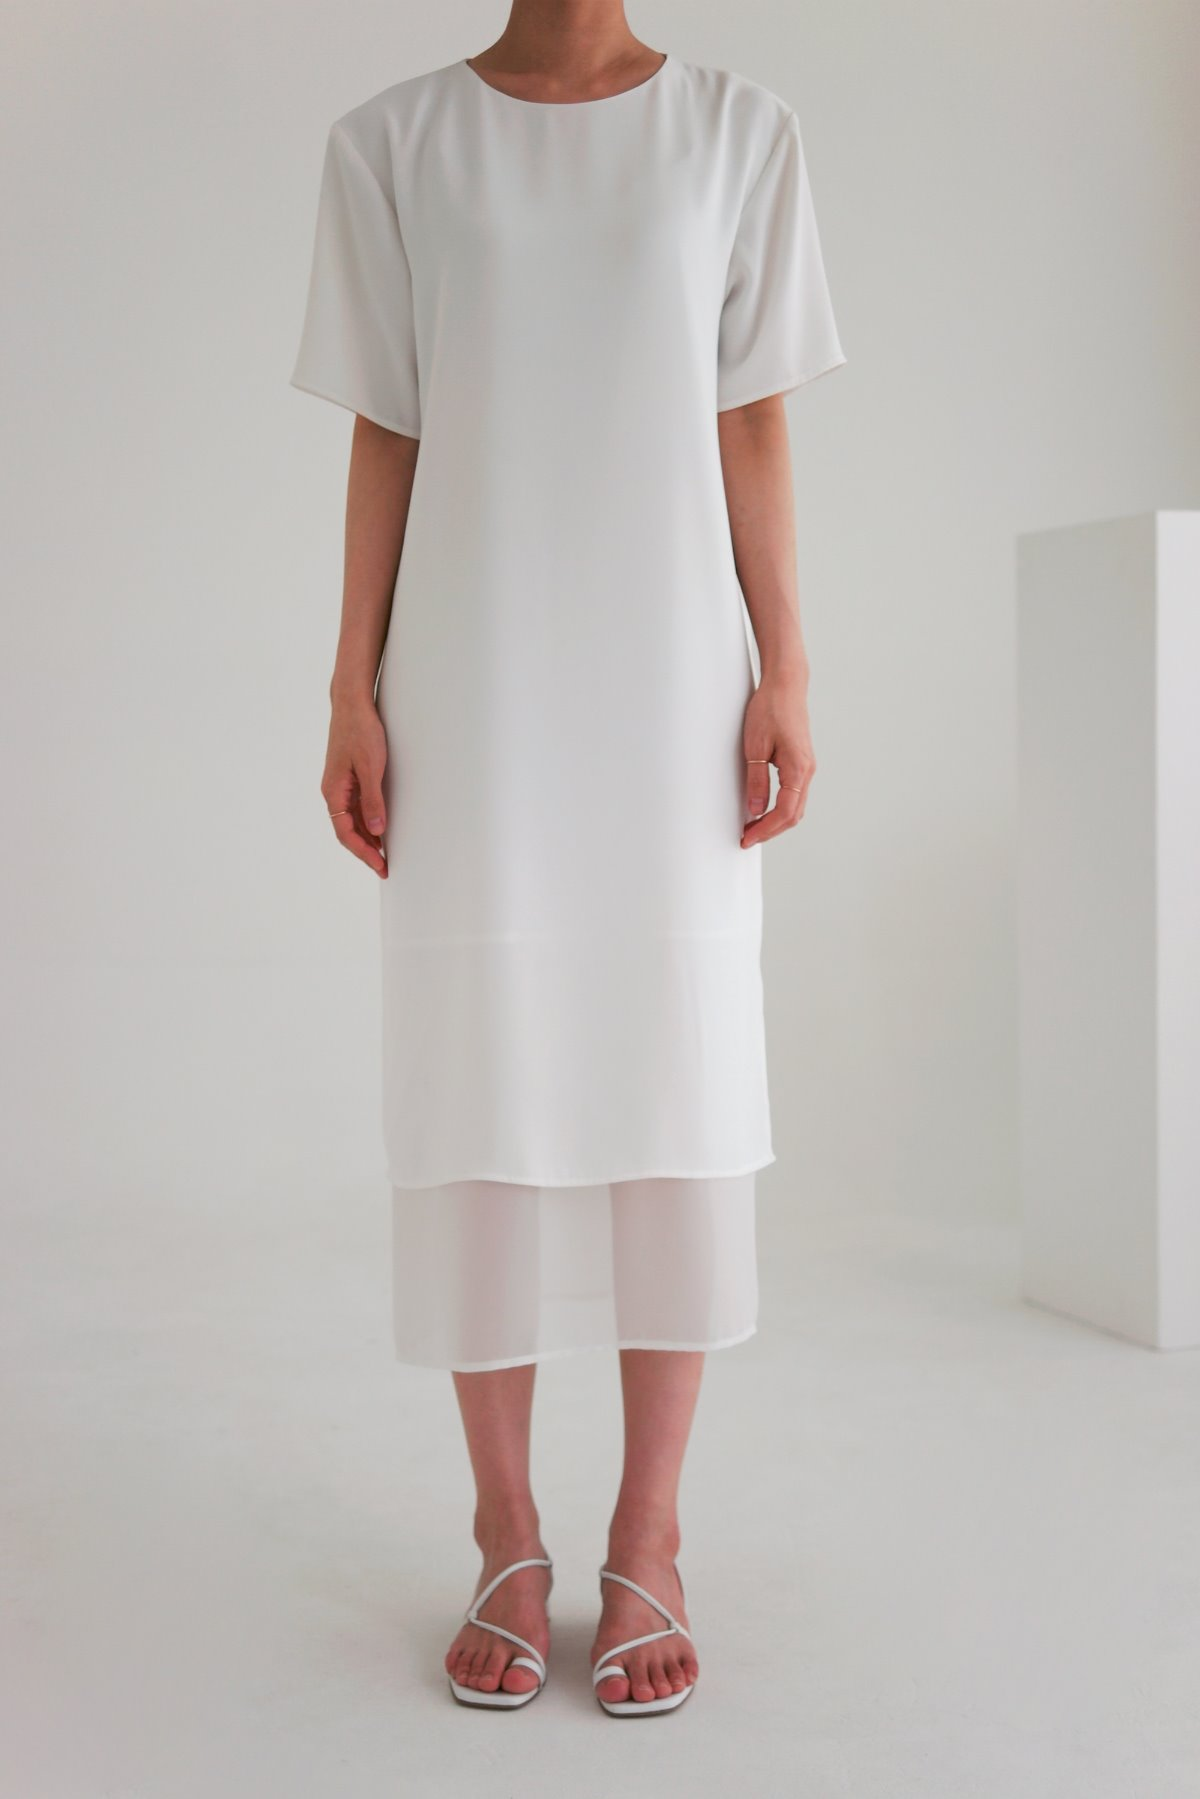 anthese claro layered dress, white (40% discount)